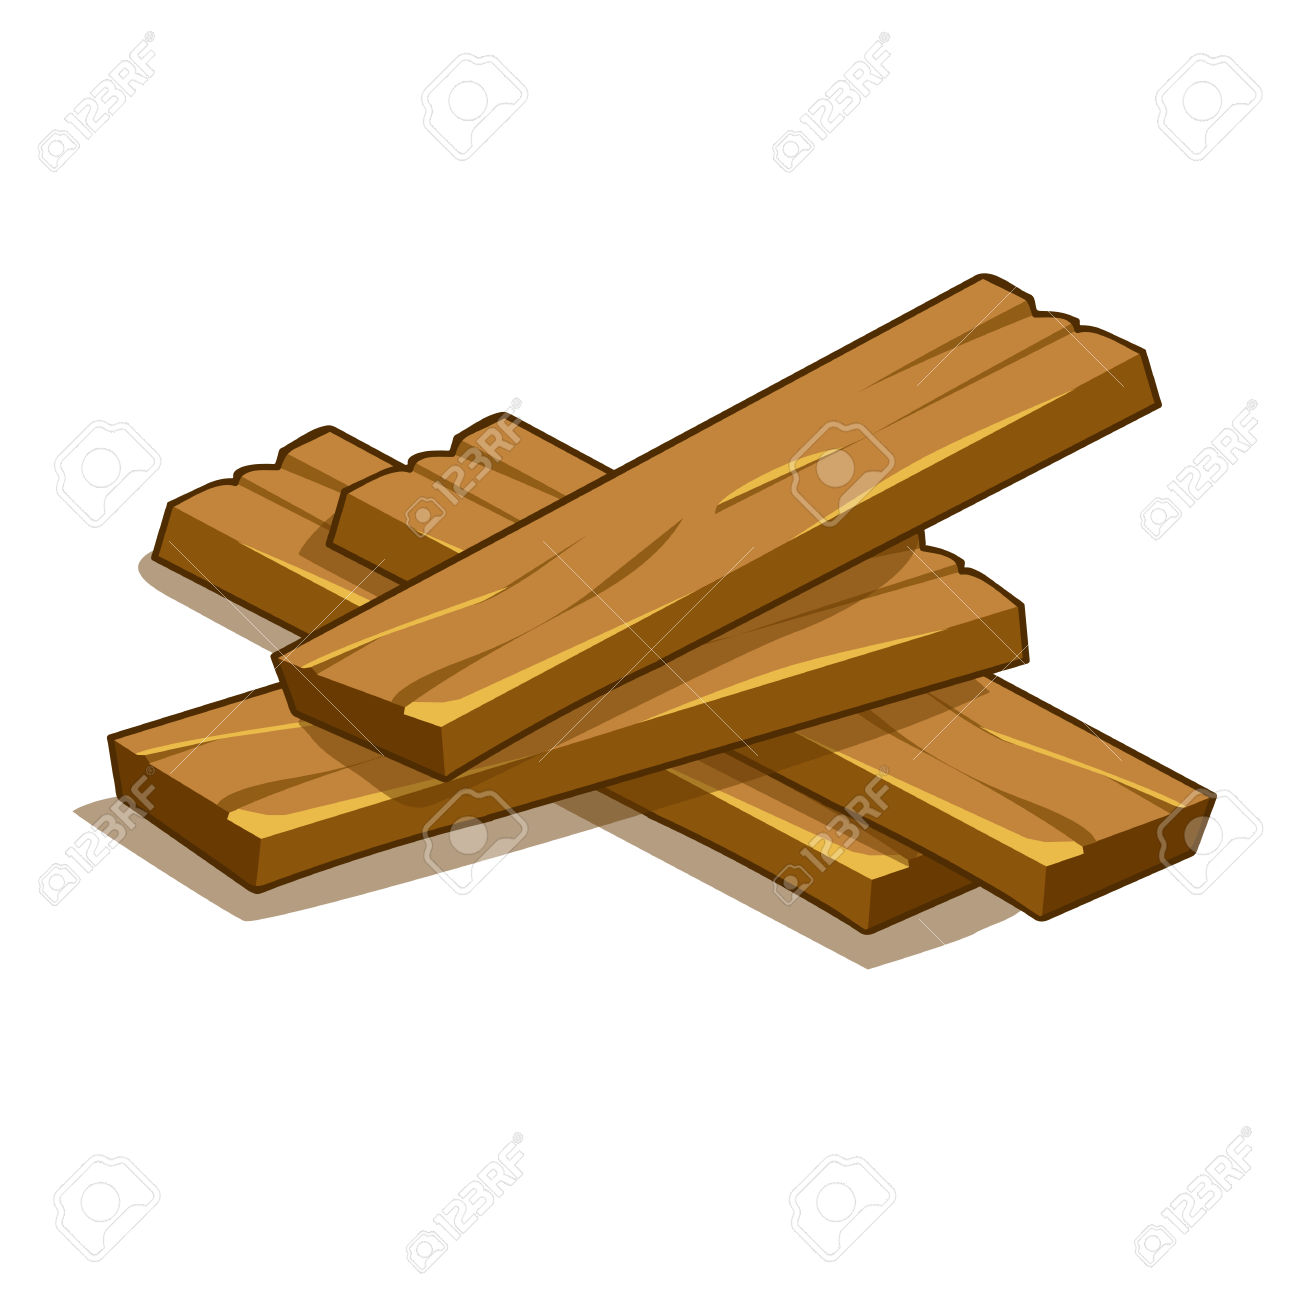 Wooden planks clipart clipground